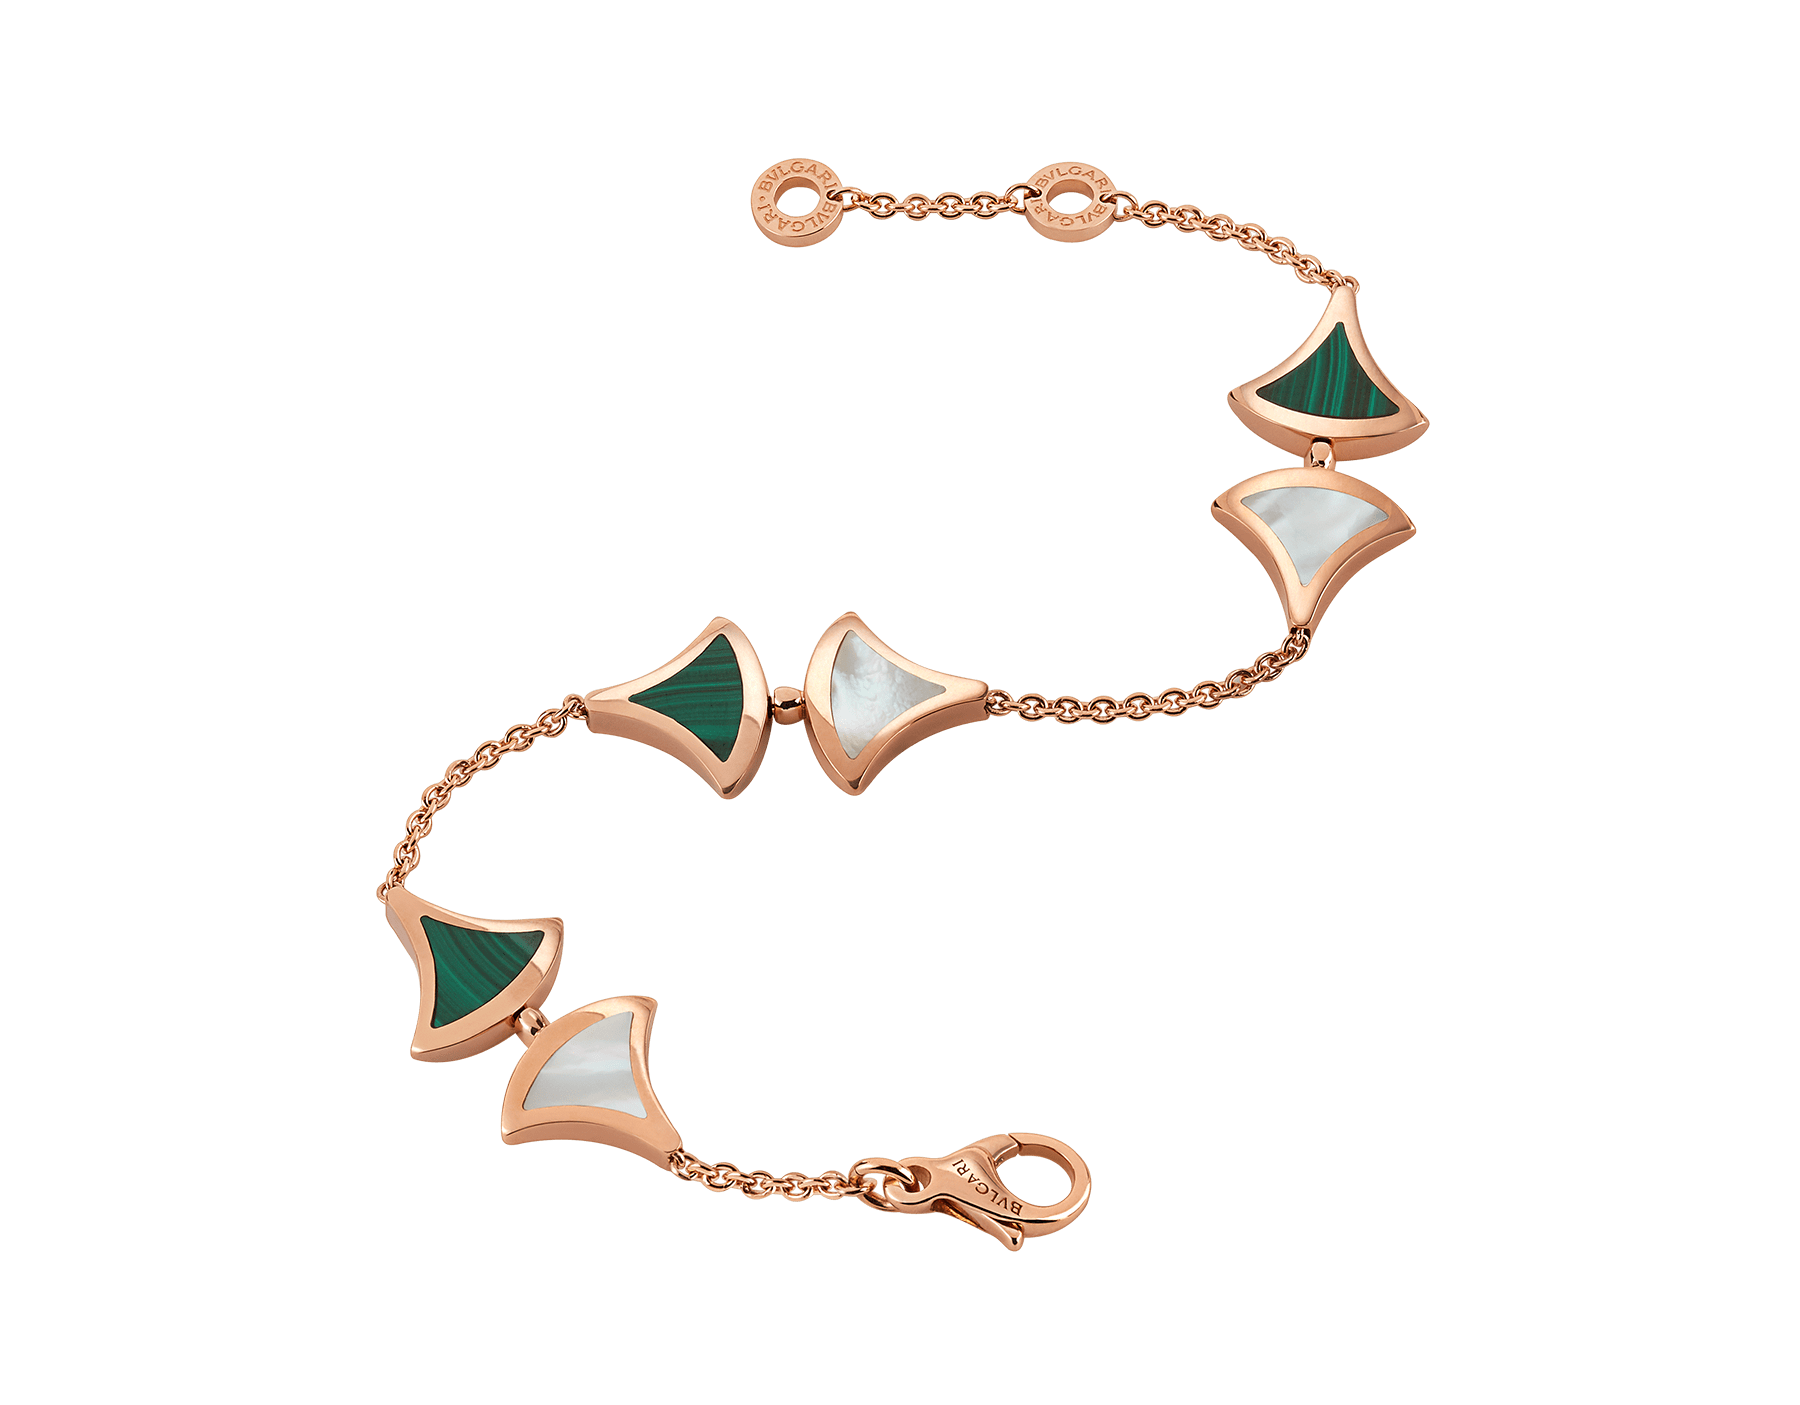 DIVAS' DREAM bracelet in 18 kt rose gold, set with malachite and mother-of-pearl elements. BR857497 image 2